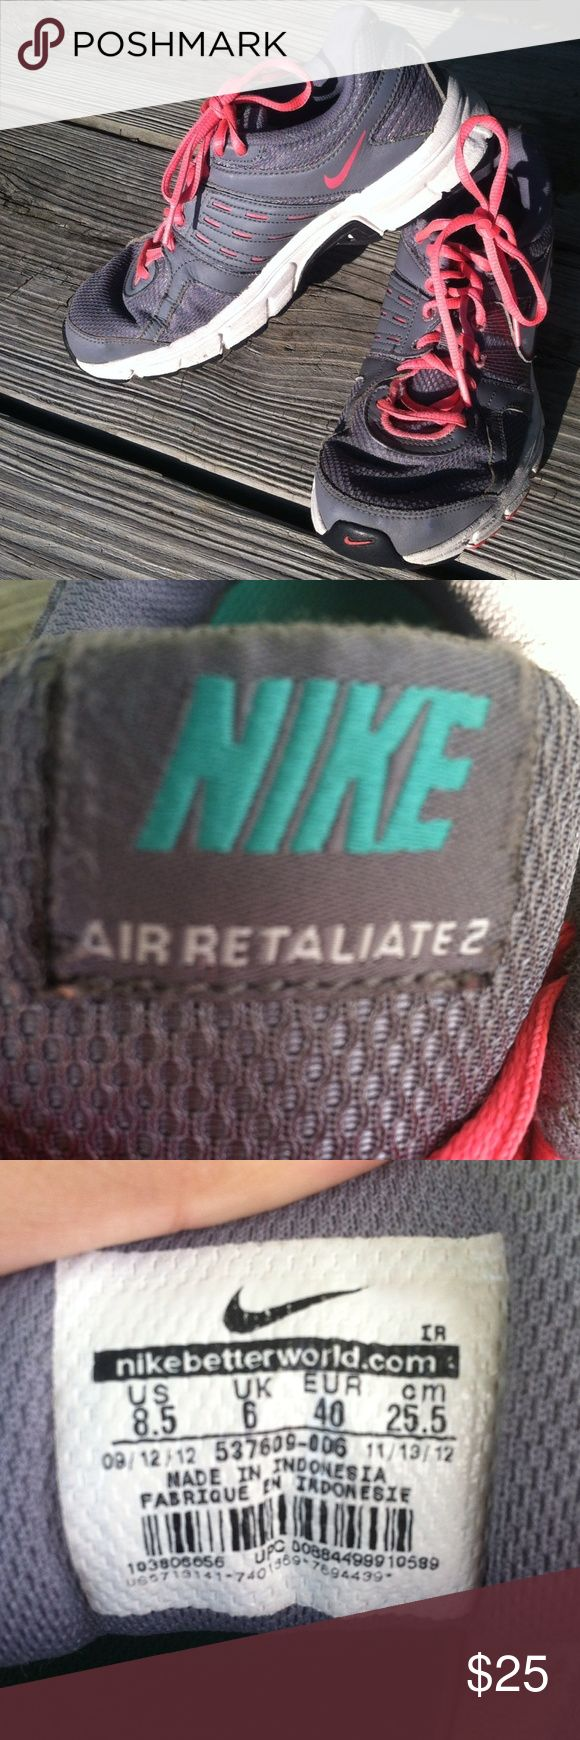 Nike air retaliate 2 Nike air retaliate 2, look better with feet in them, the white part could be whiter, & there is a slit on the left shoe (as shown) Nike Shoes Athletic Shoes